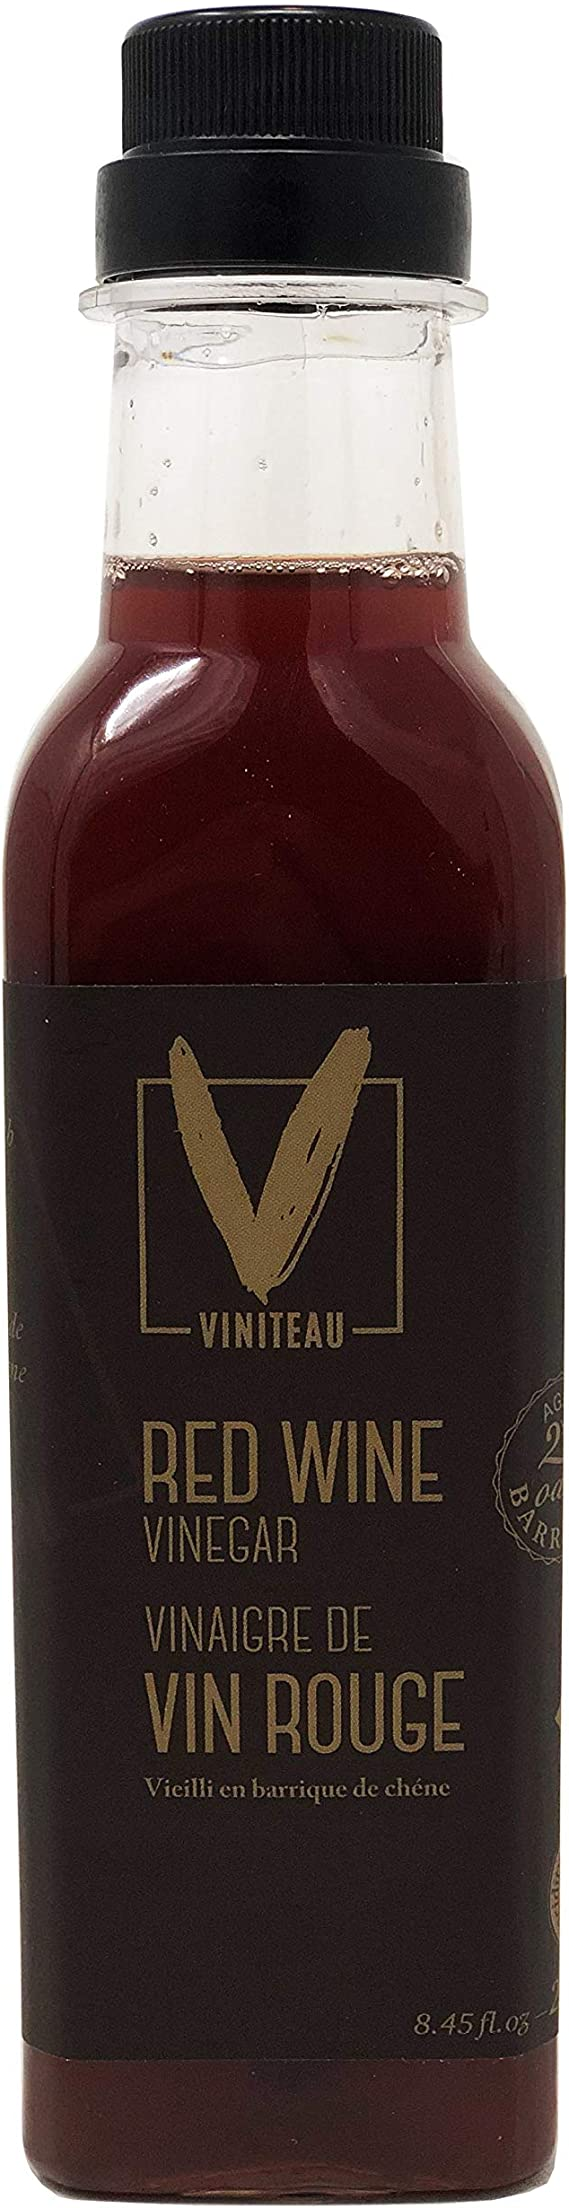 Viniteau Red Wine Vinegar Aged 2yrs - 8.45 fl oz (250 ml) | Imported From Italy